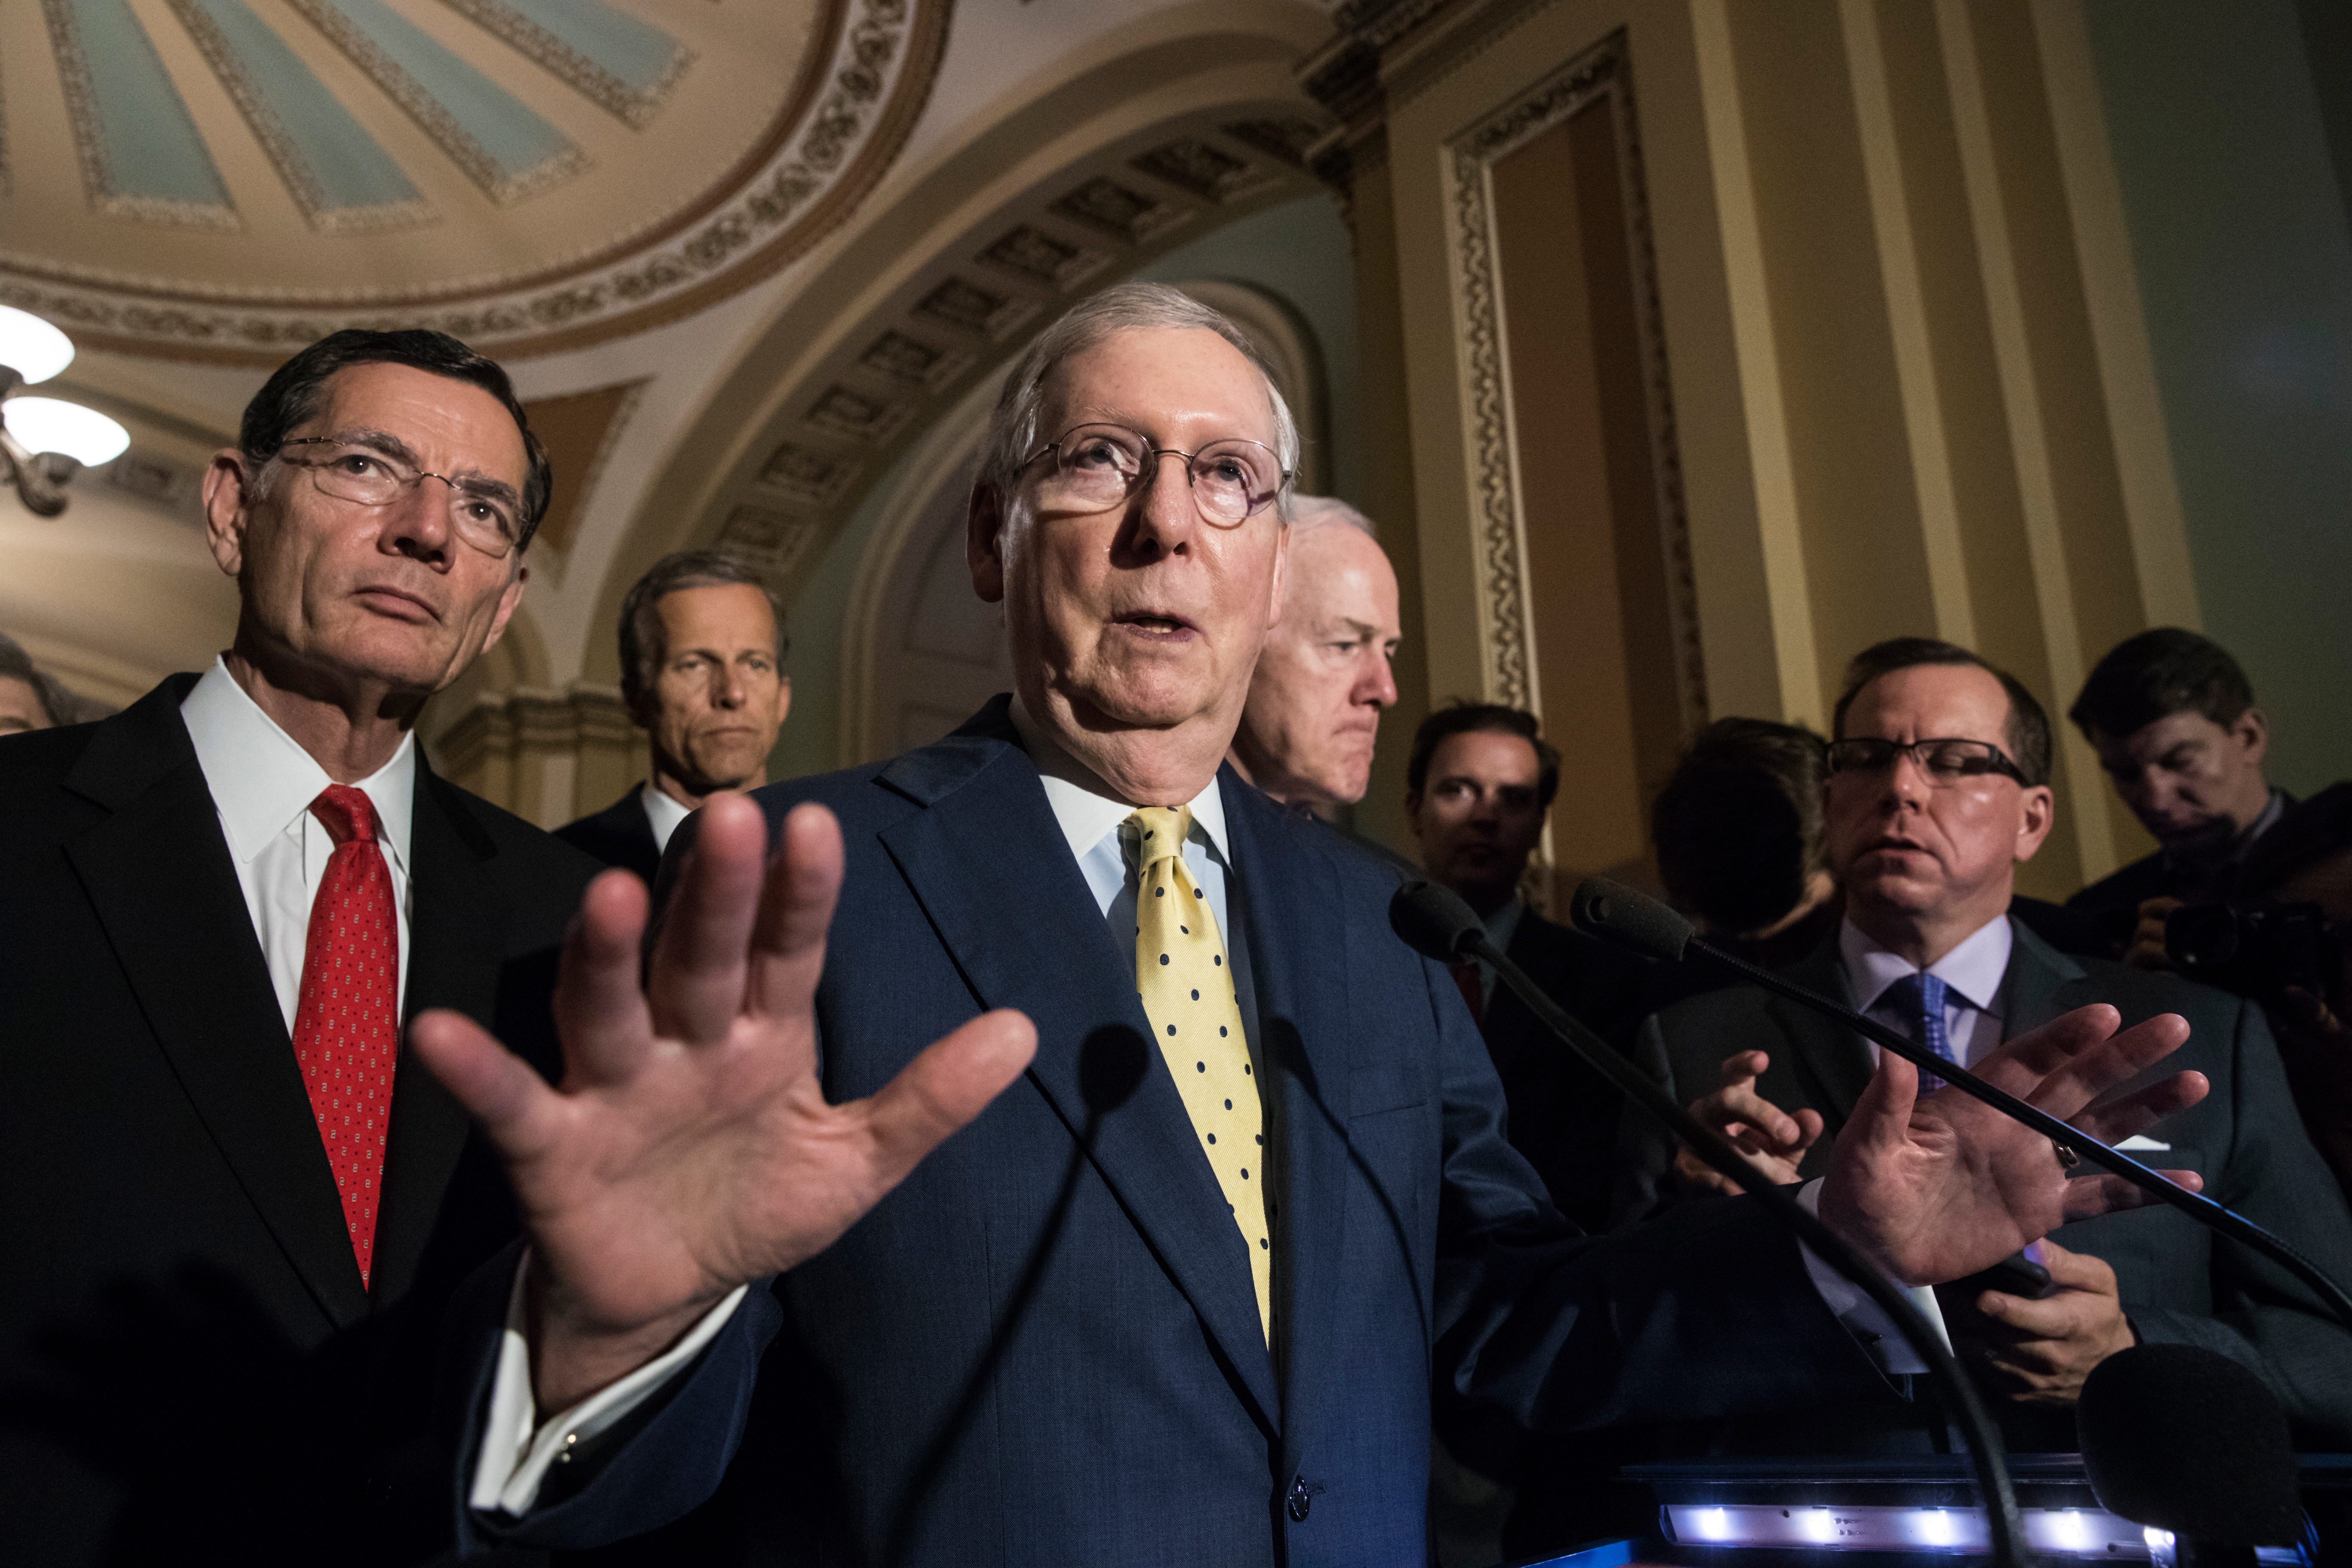 Trumpcare Takes From the Poor to Give to the Rich